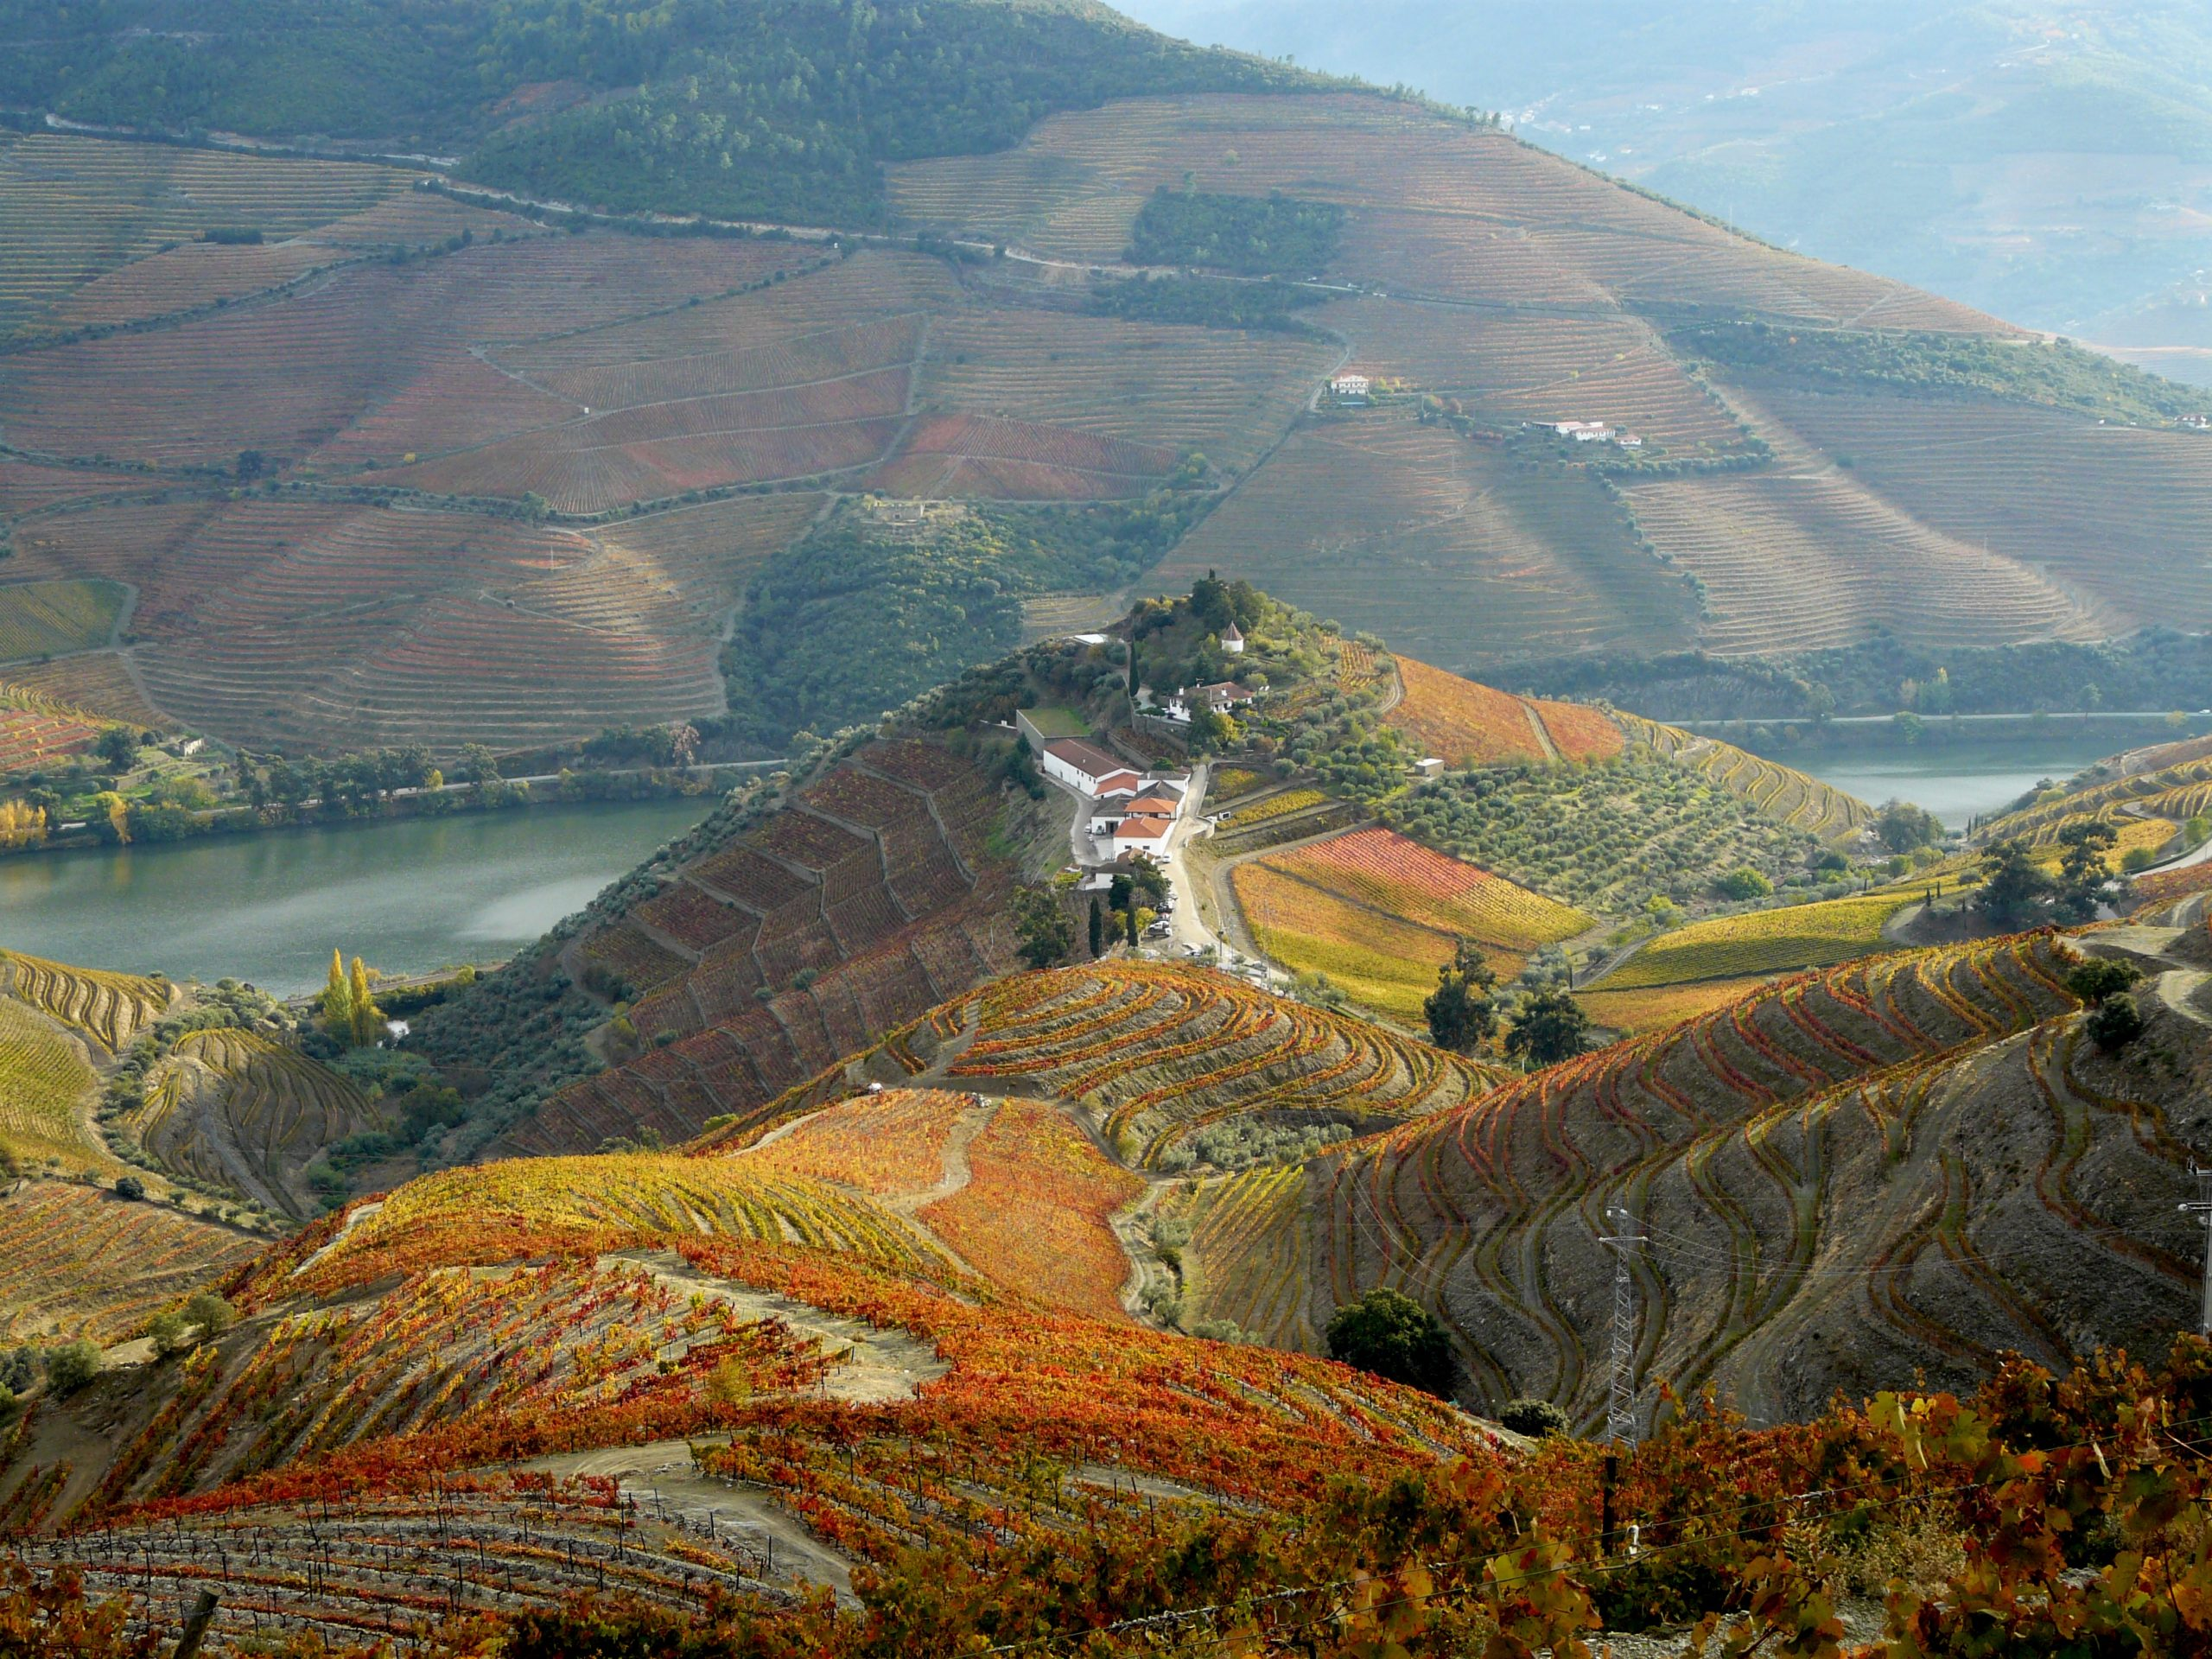 Unveil the Douro Valley Estate awarded Best Of Wine Tourism in Architecture and Landscapes